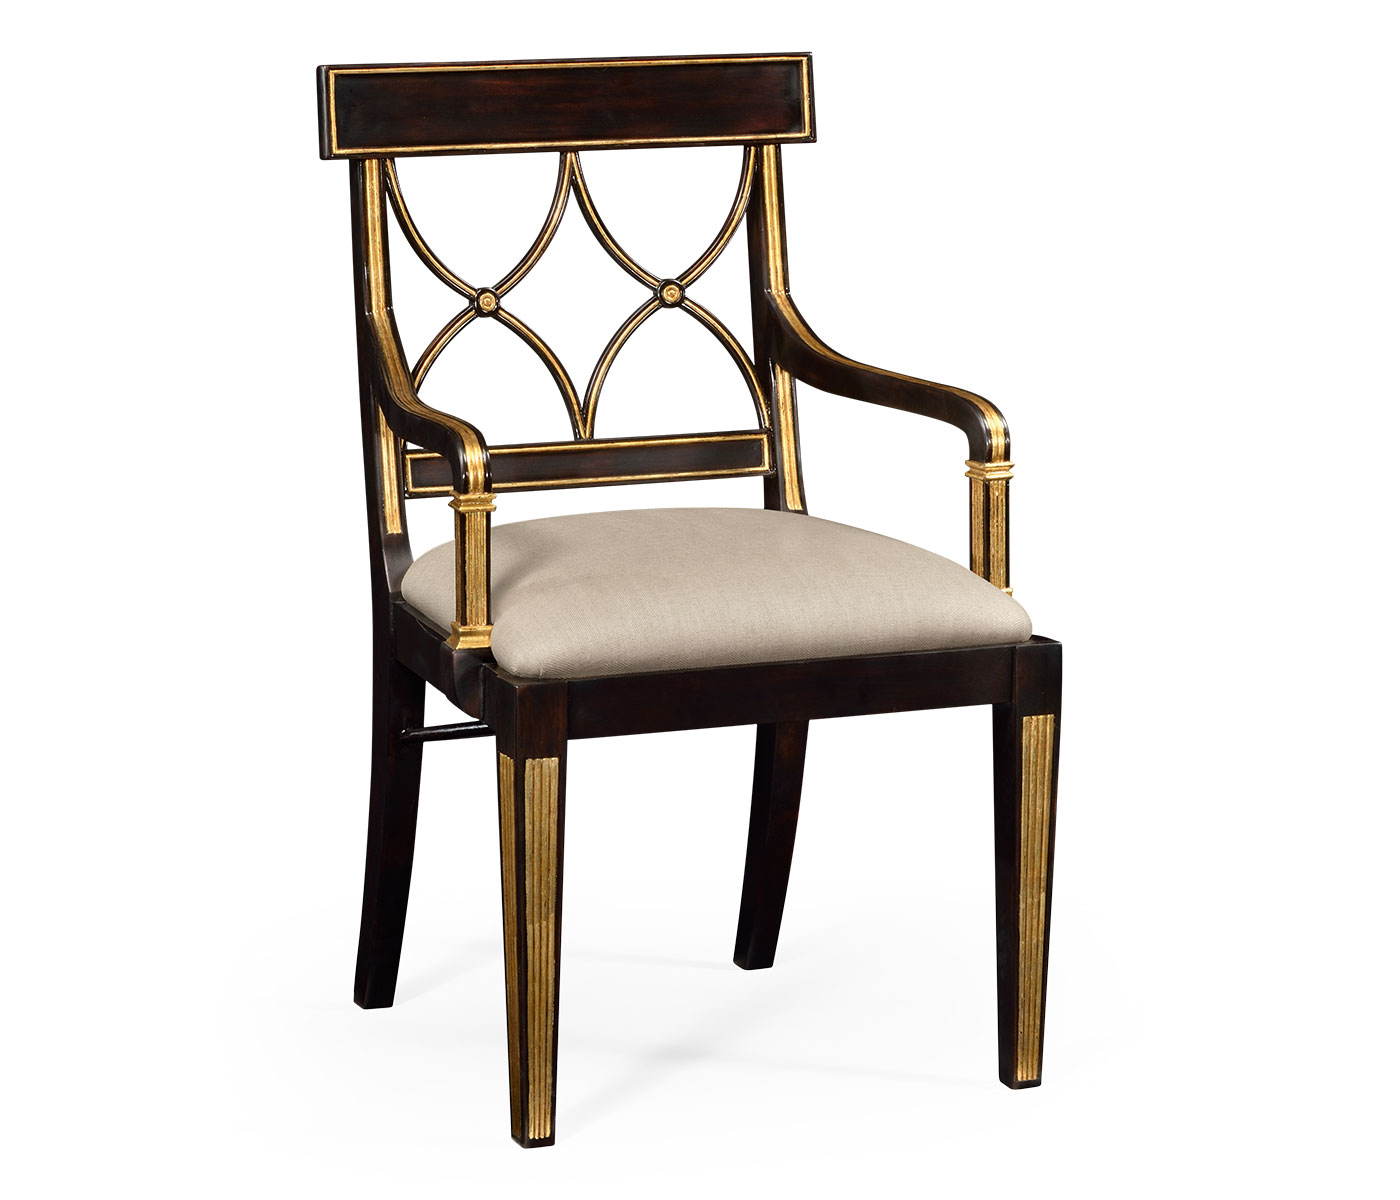 Superior Regency Black Painted Curved Back Chair (Arm)